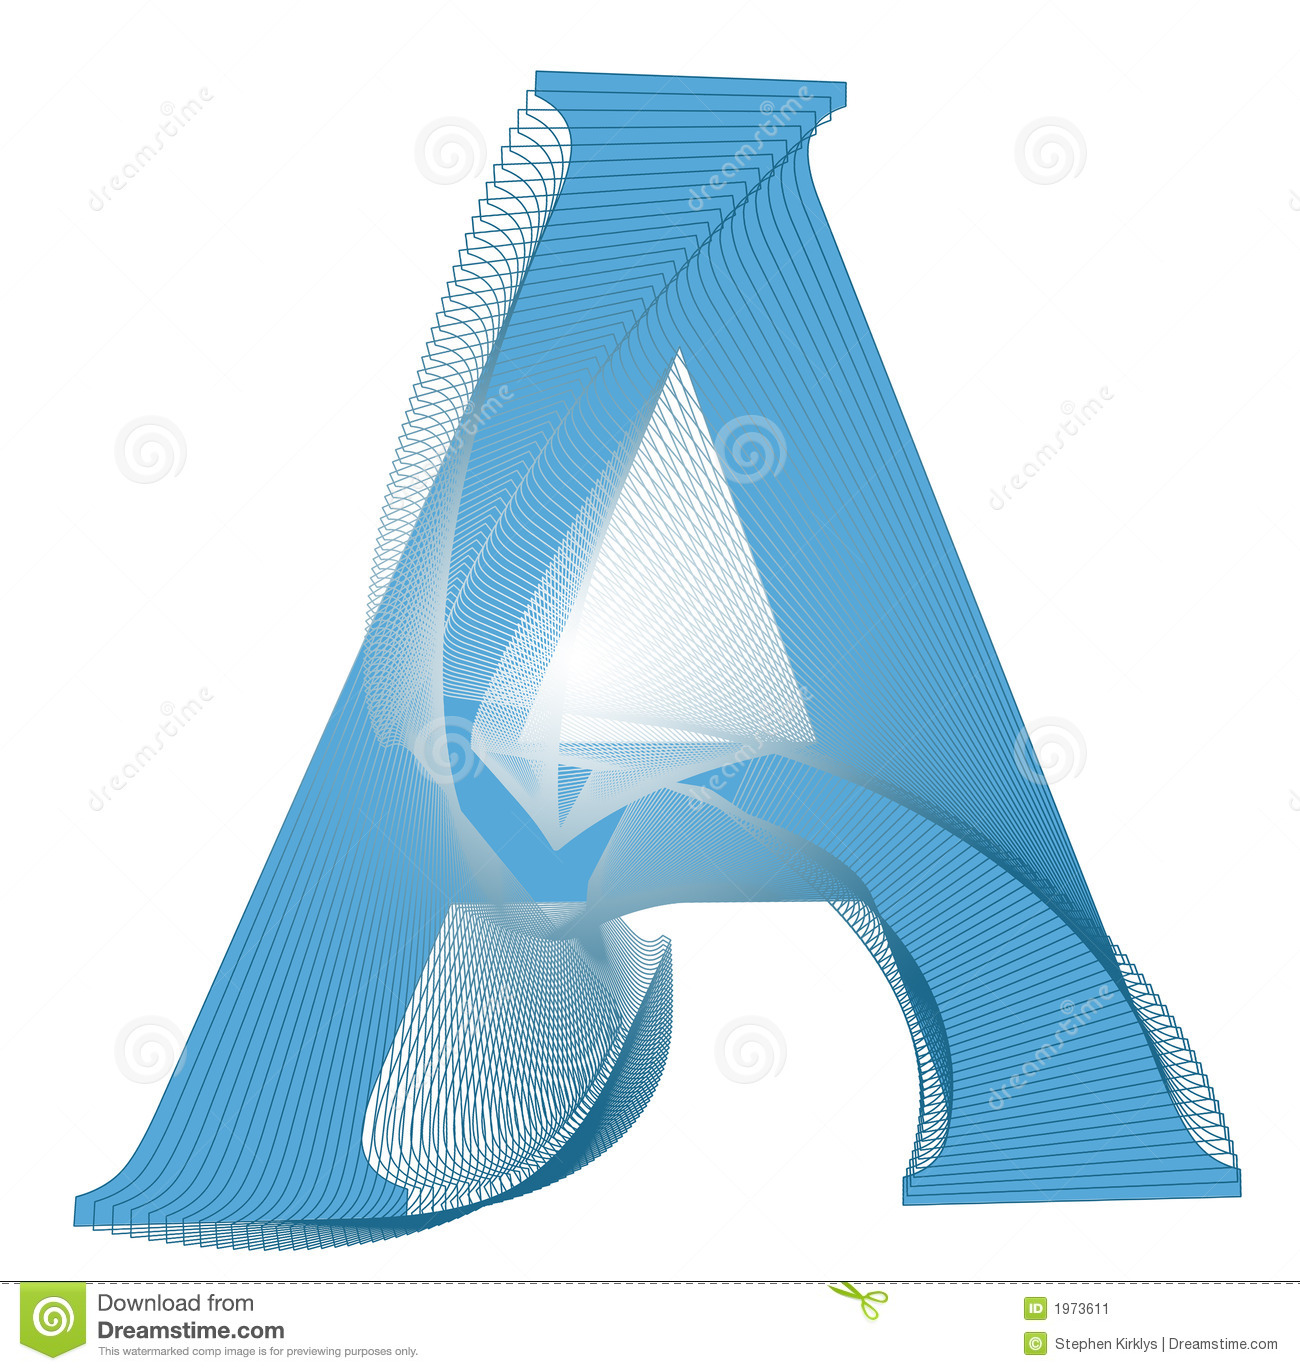 A Letter Design Stock Image - Image: 1973611